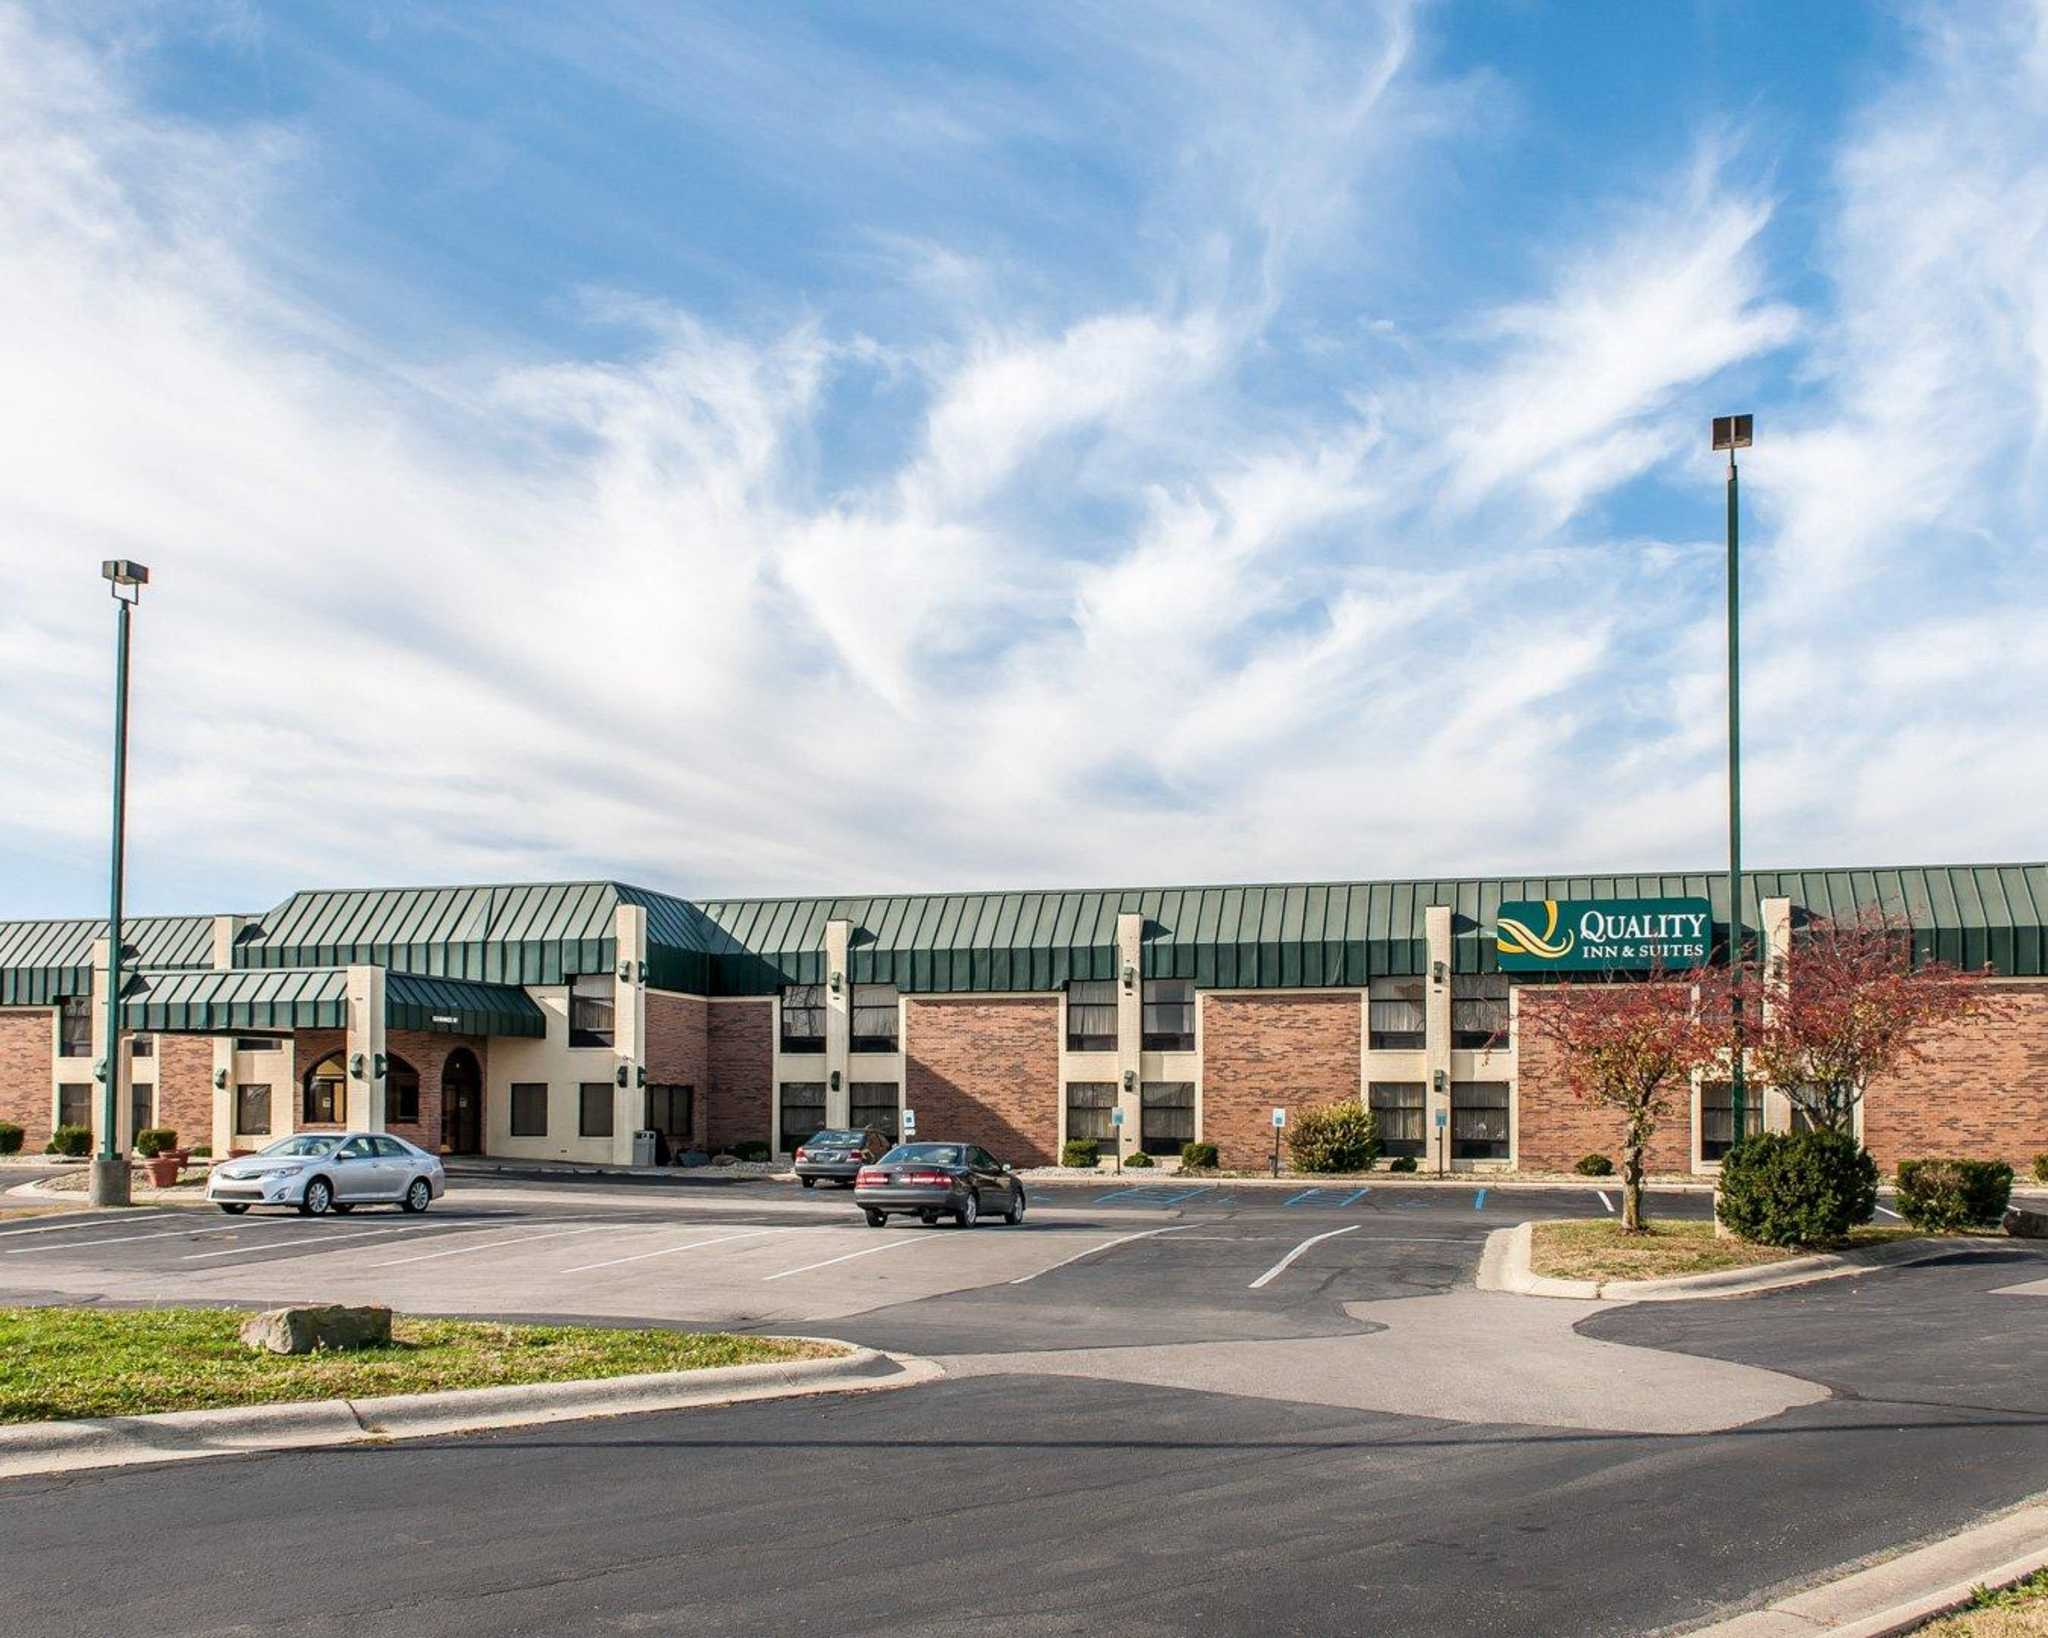 Quality Inn & Suites Shelbyville I-74 image 2